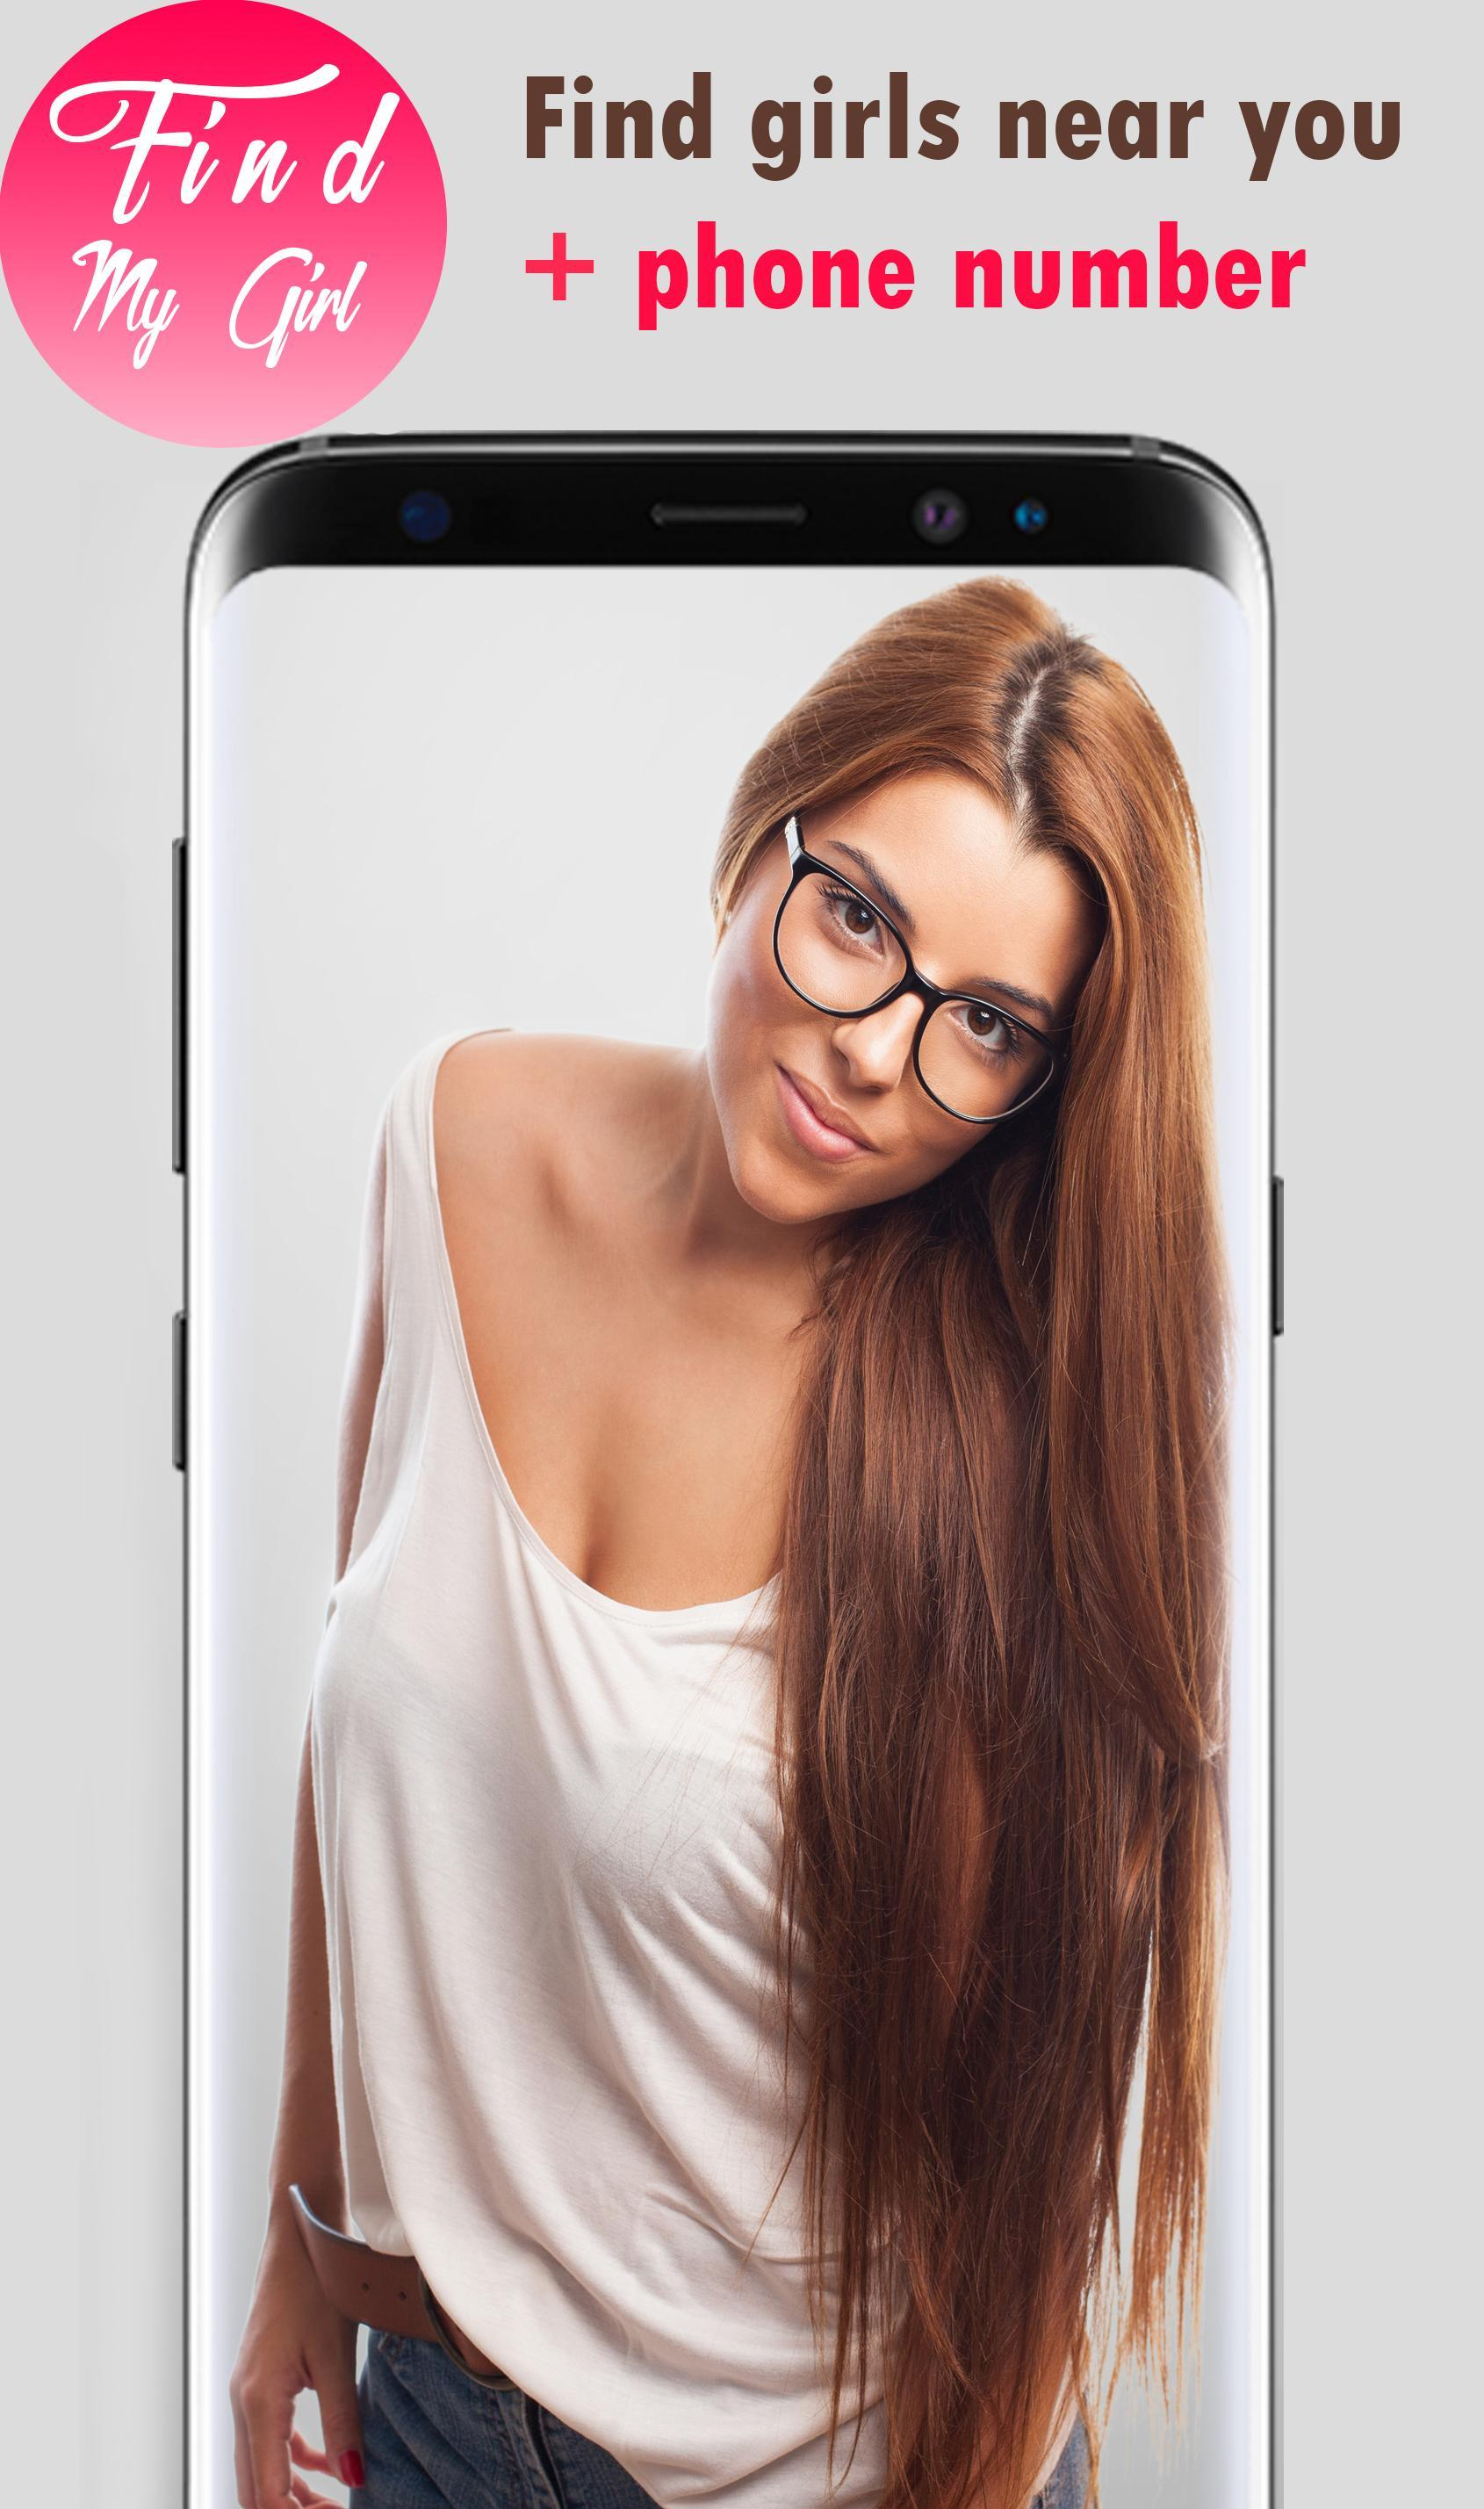 Hot Finder girl Near me + phone number cho Android - Tải